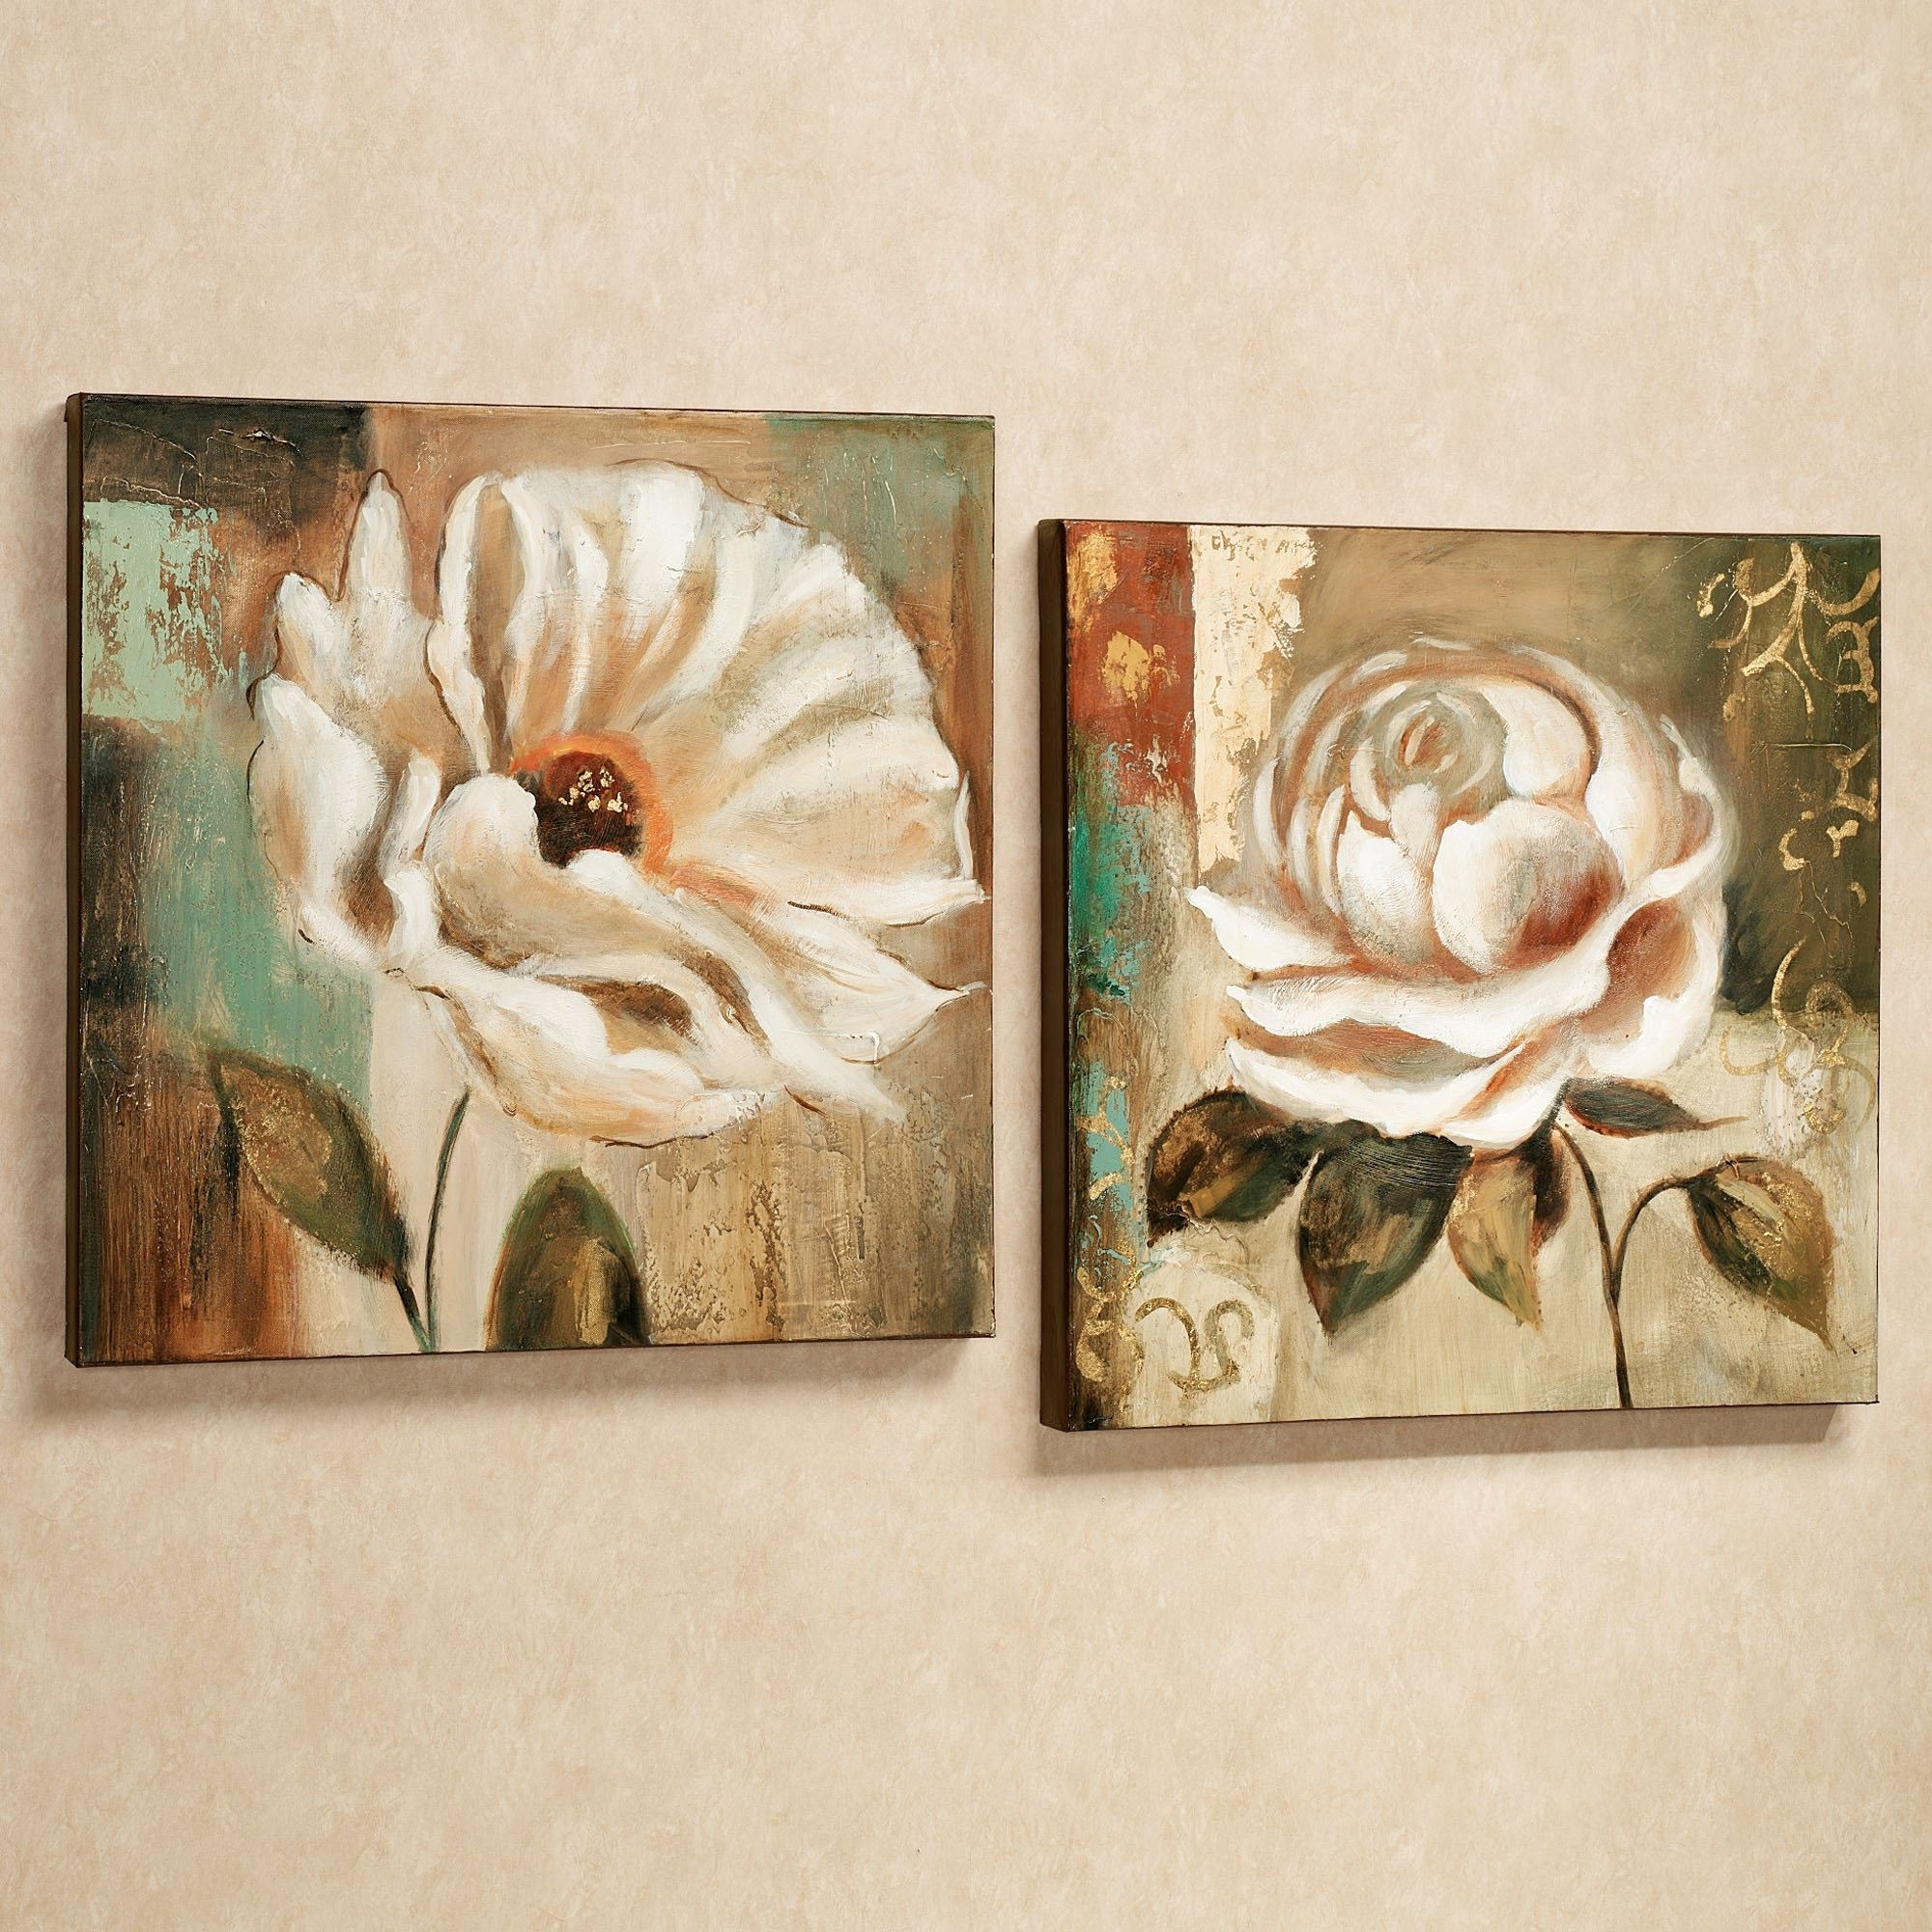 Wall Art Design: Floral Canvas Wall Art Garden Delicacies Canvas In 2018 Rectangular Canvas Wall Art (View 9 of 15)